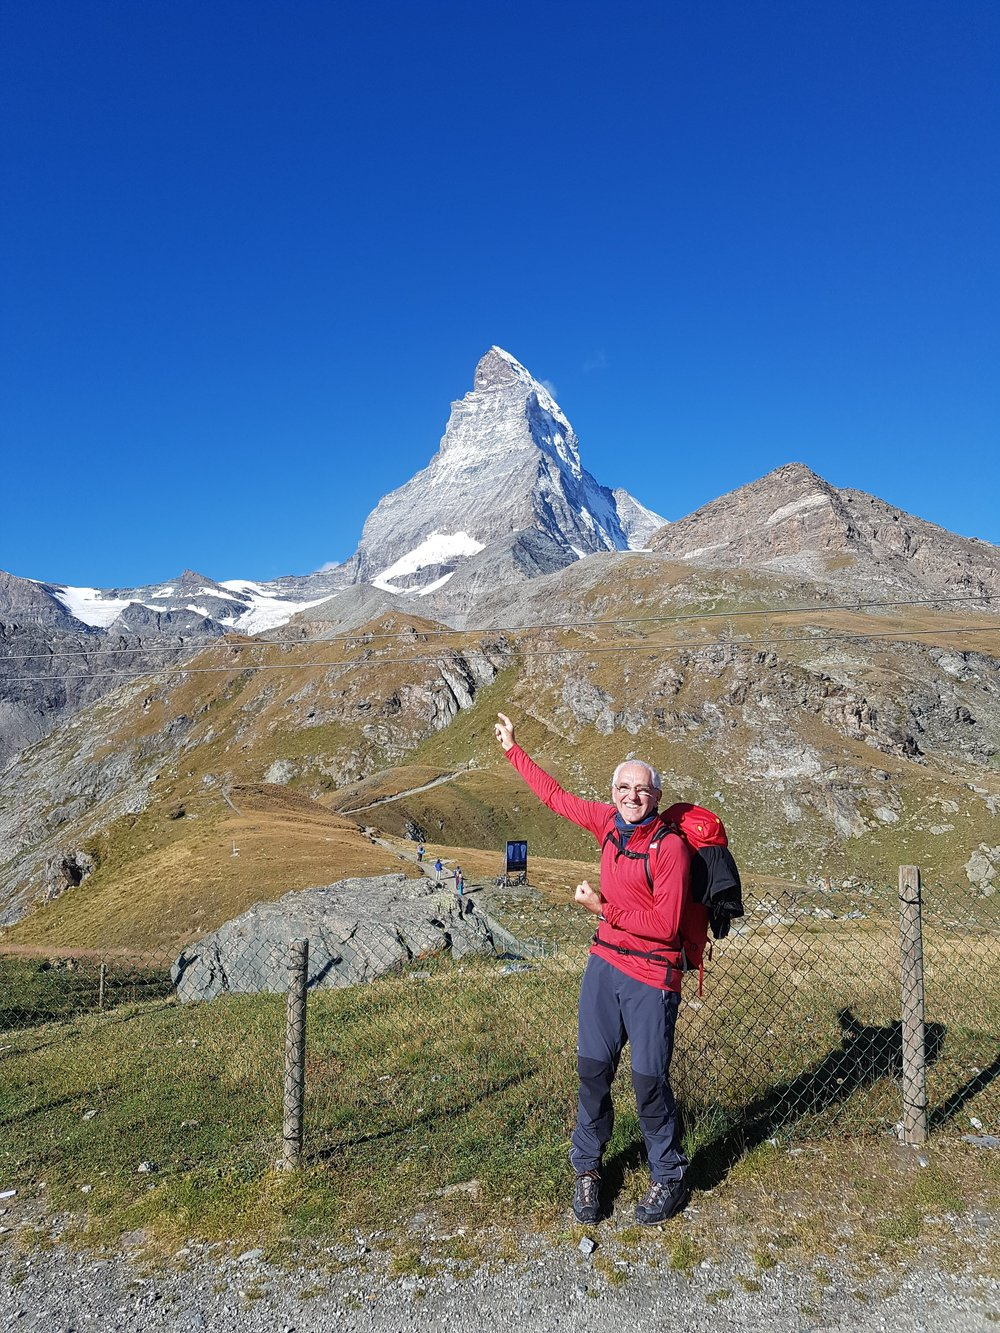 Feeling good after ascending the Hornli Ridge, Matterhorn.